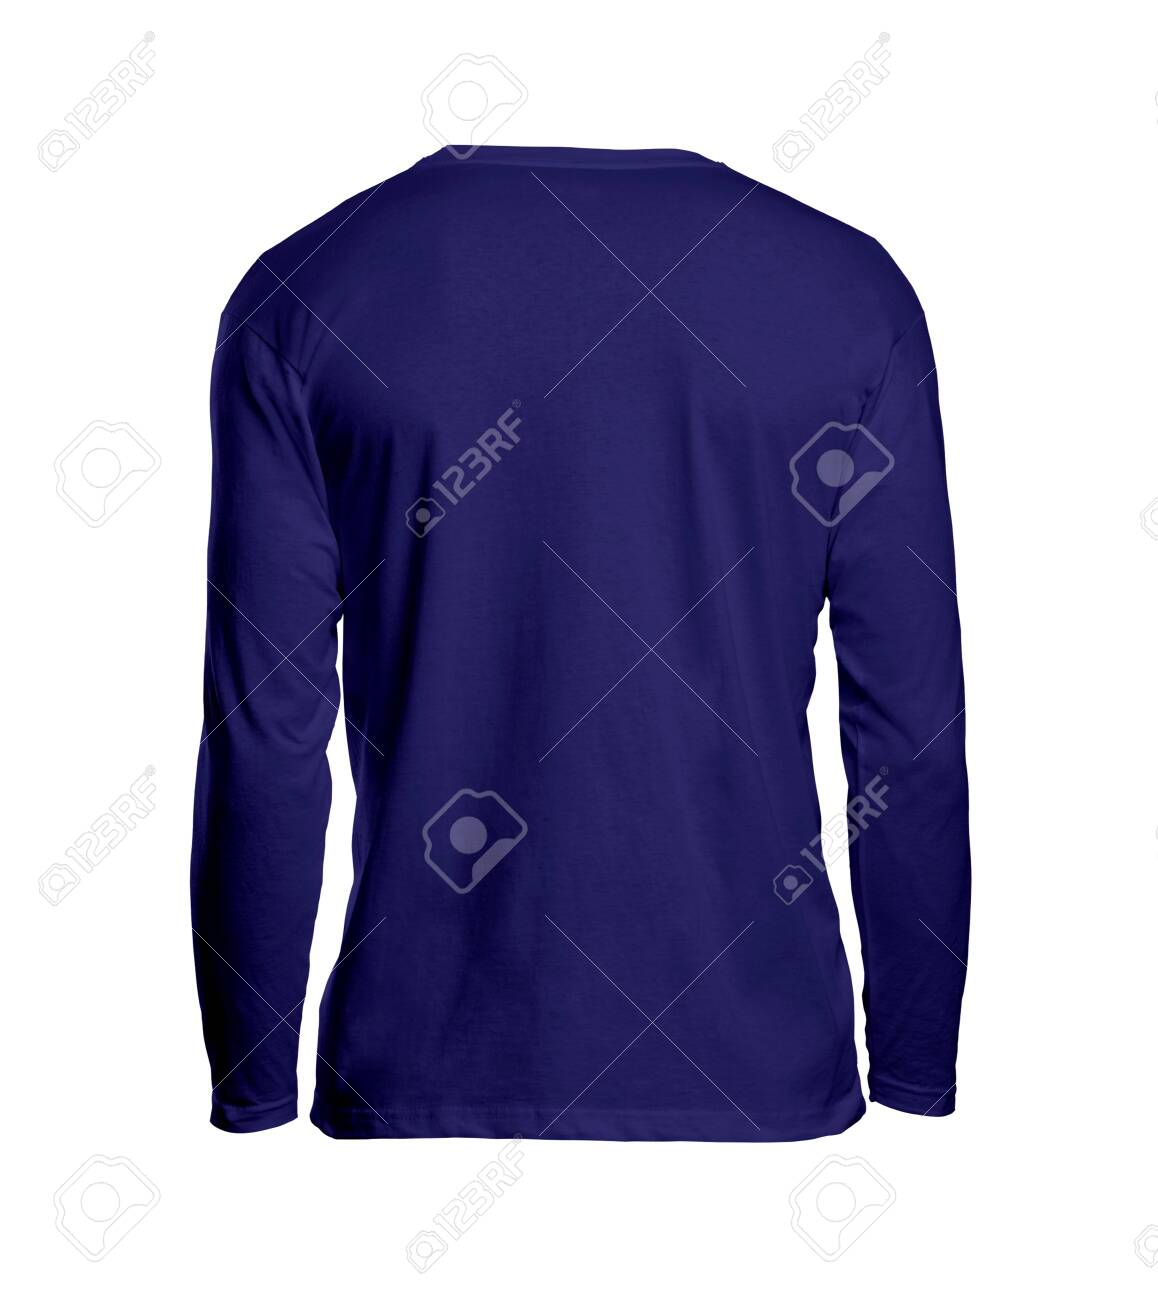 This Back View Long Sleeve Tshirt Mockups In Royal Blue Color